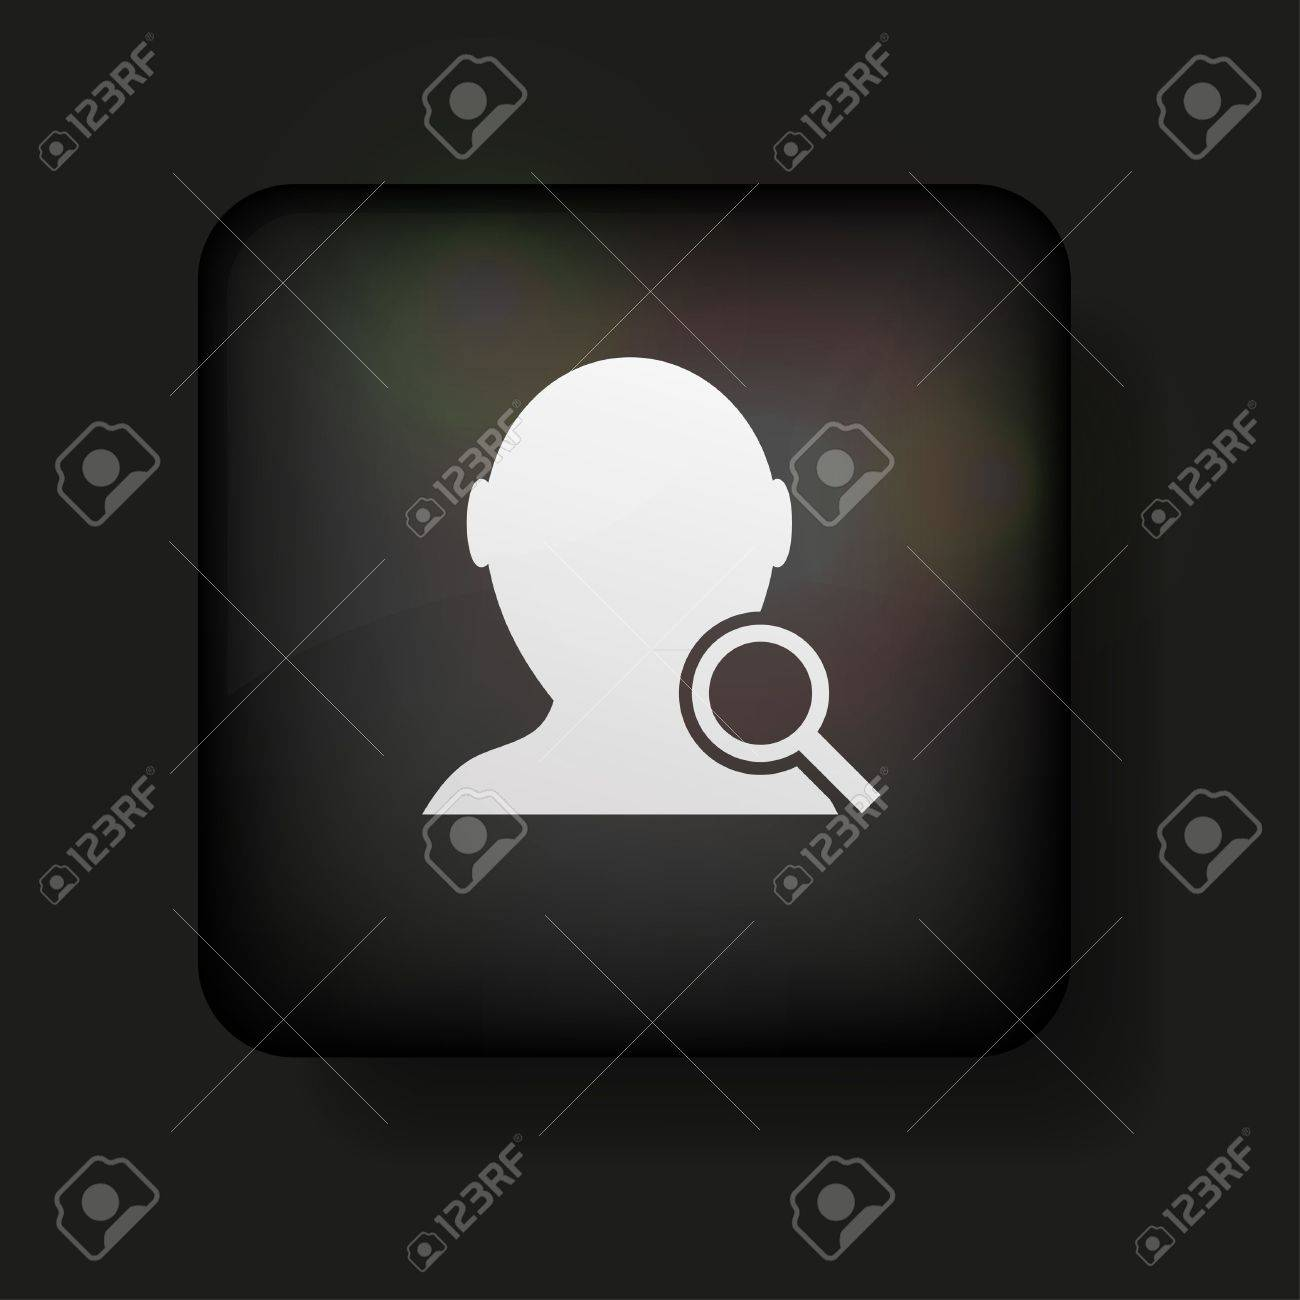 search friend icon on black. Stock Vector - 13698362